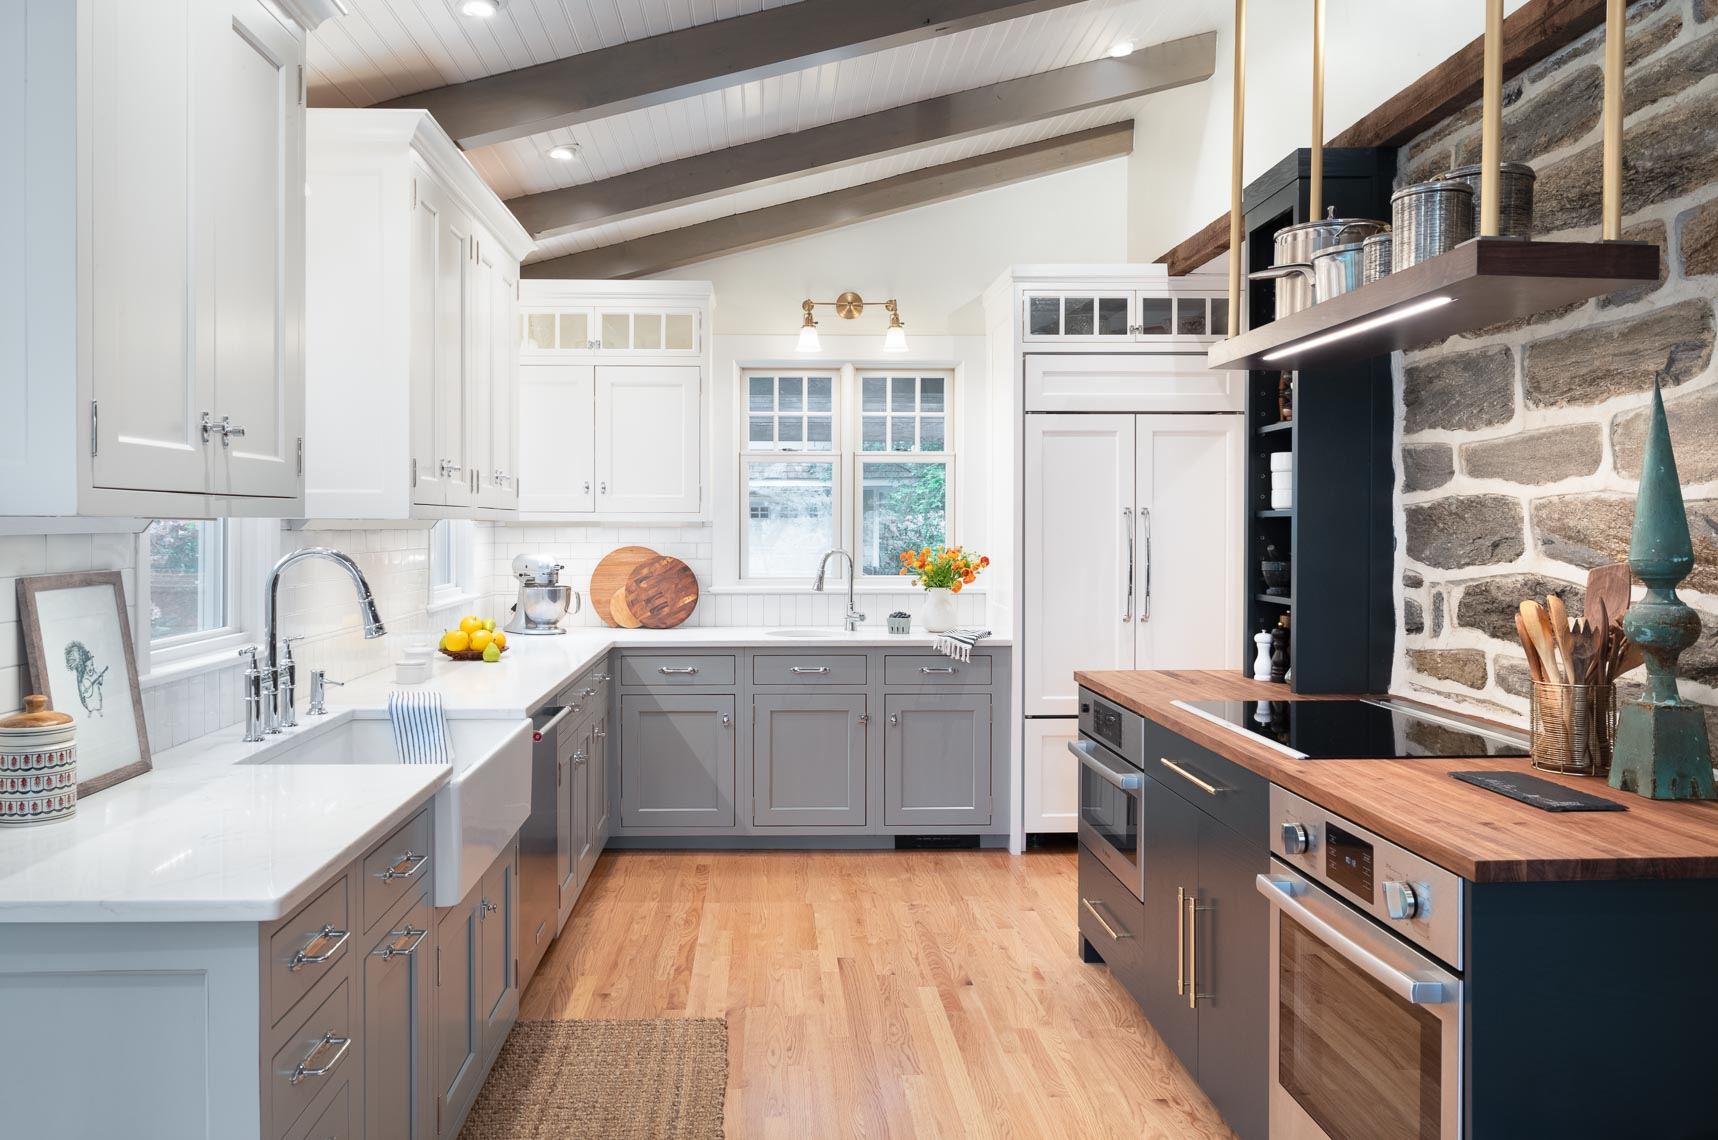 Kitchen Interior Design Photographer - Pittsburgh, PA